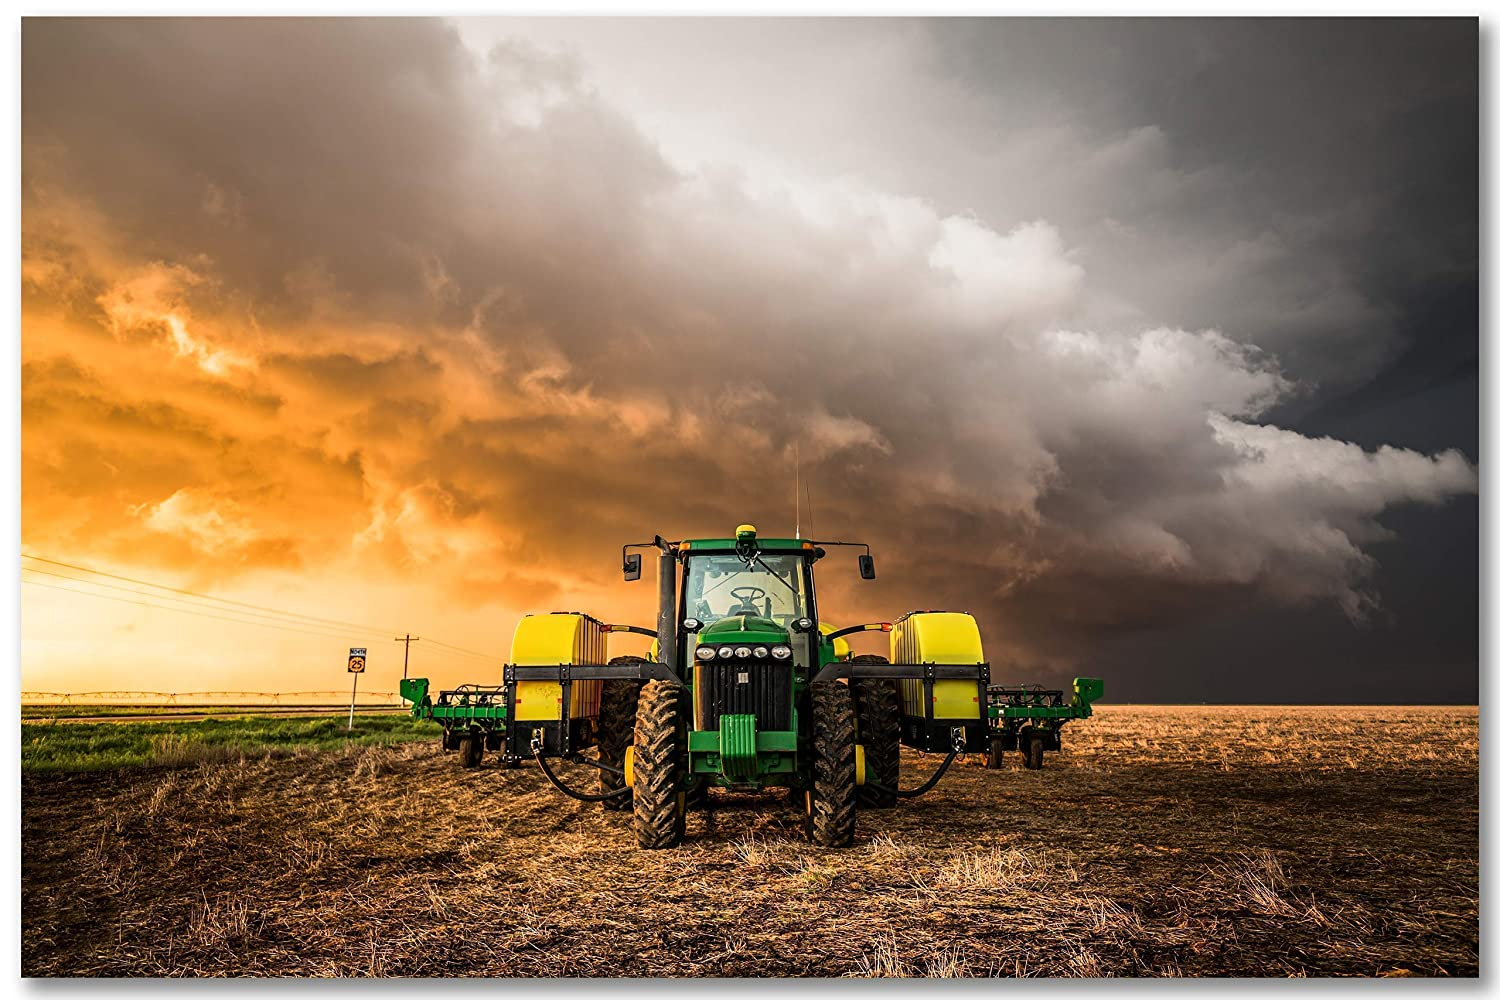 Farm Wall Art Photography Print - Picture of Tractor and Storm in Golden Sunlight in Kansas - Unframed Country Farmhouse Photo Artwork Decor 5x7 to 40x60